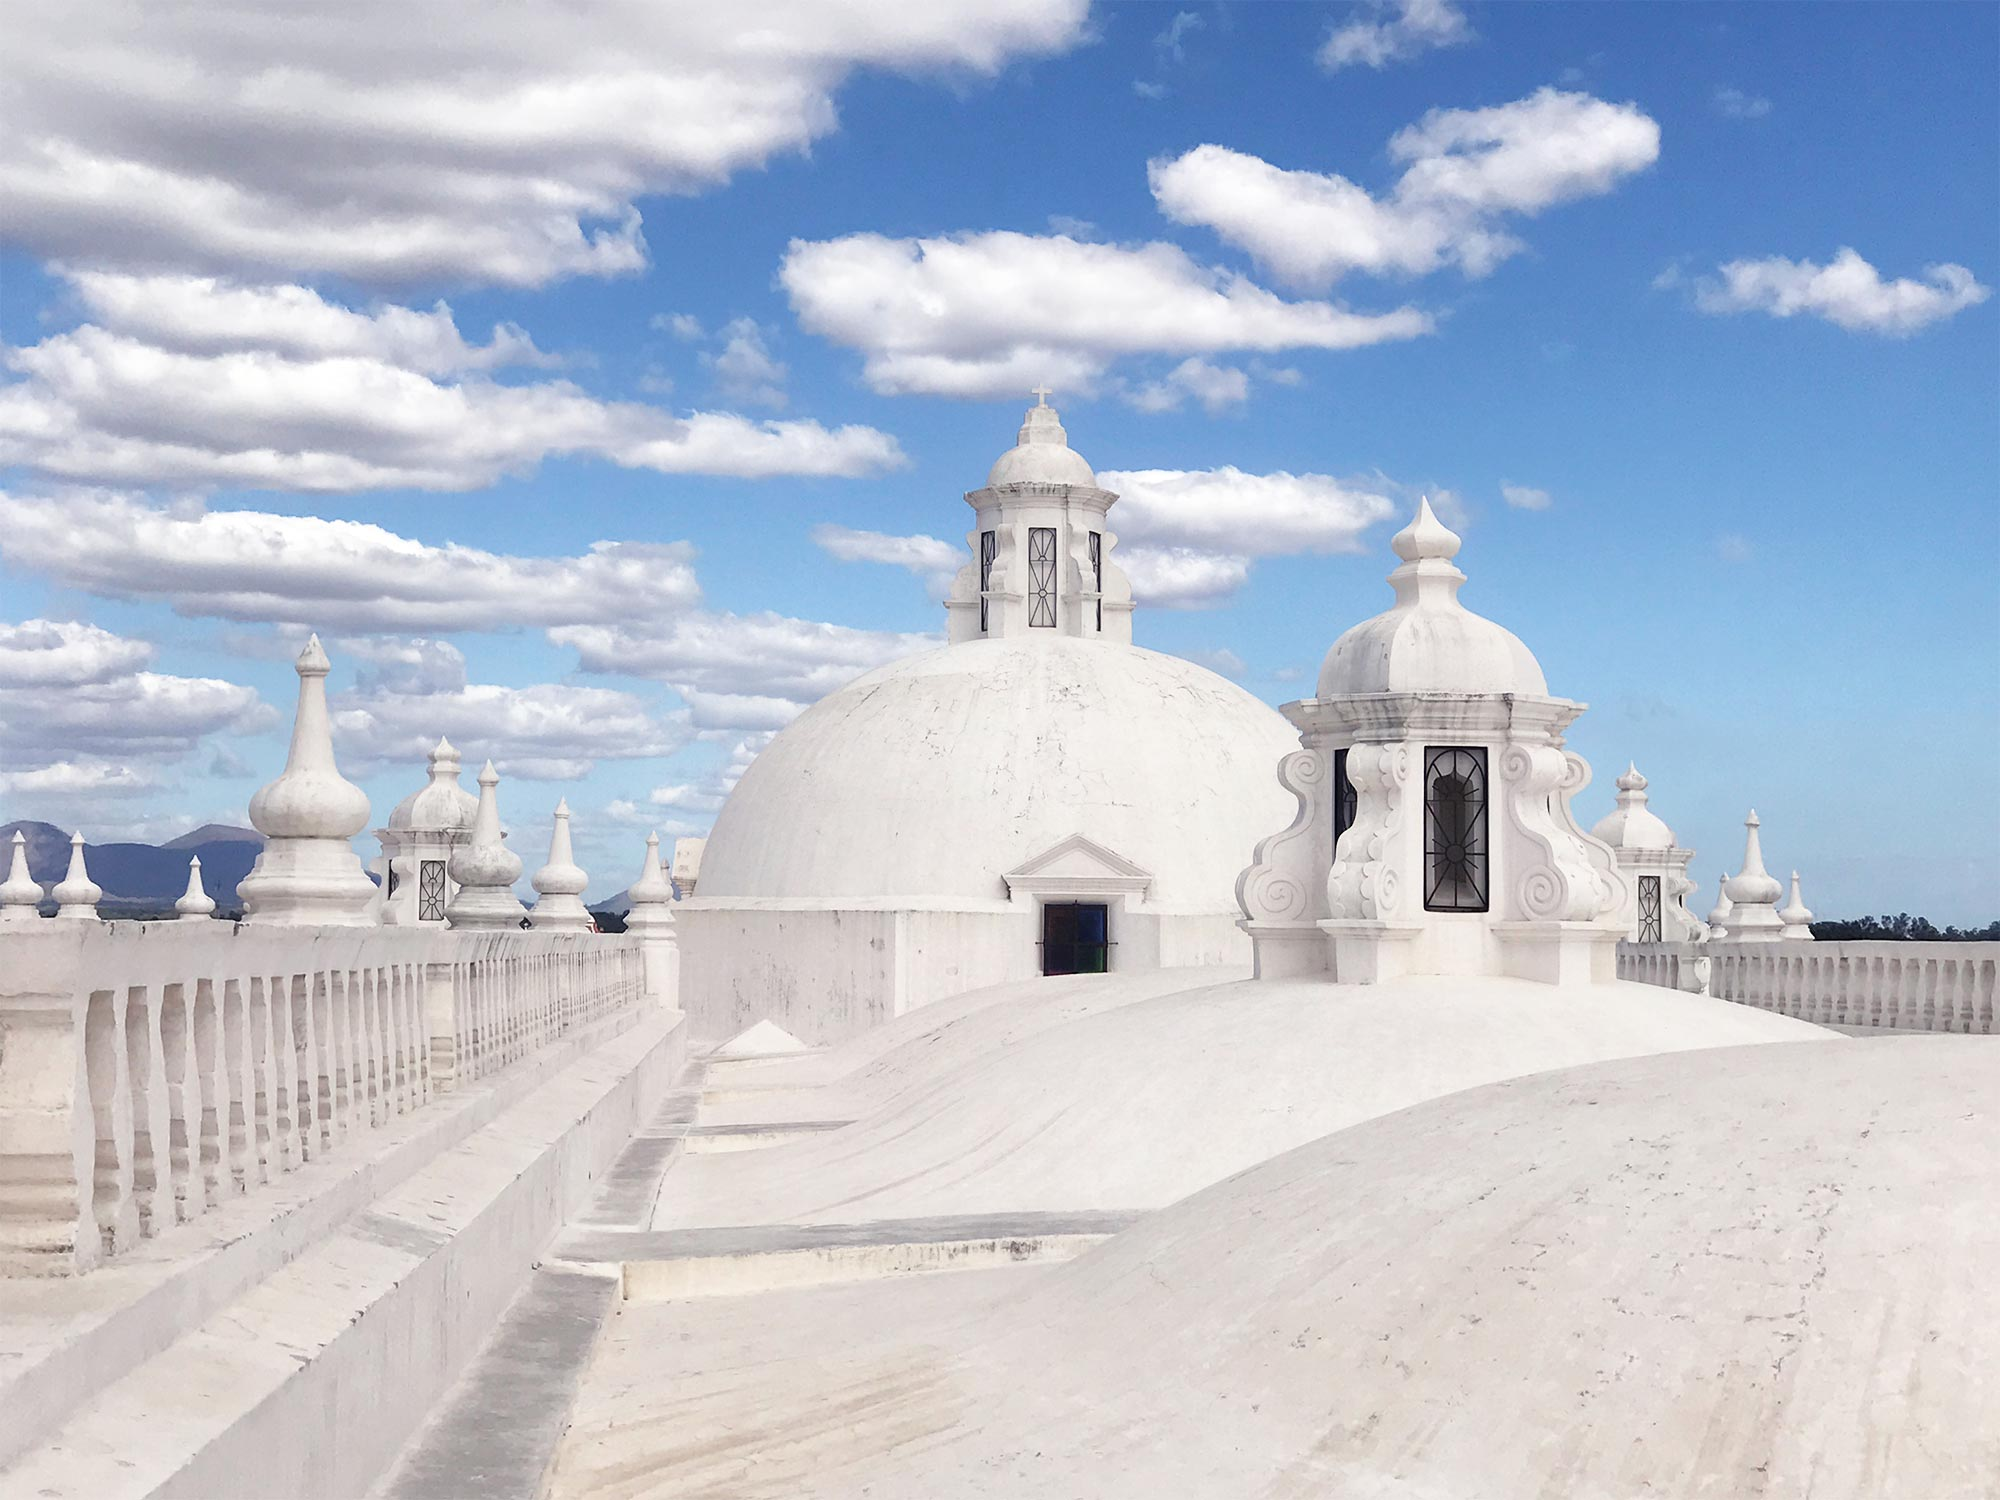 Leon Nicaragua cathedral rooftop domes